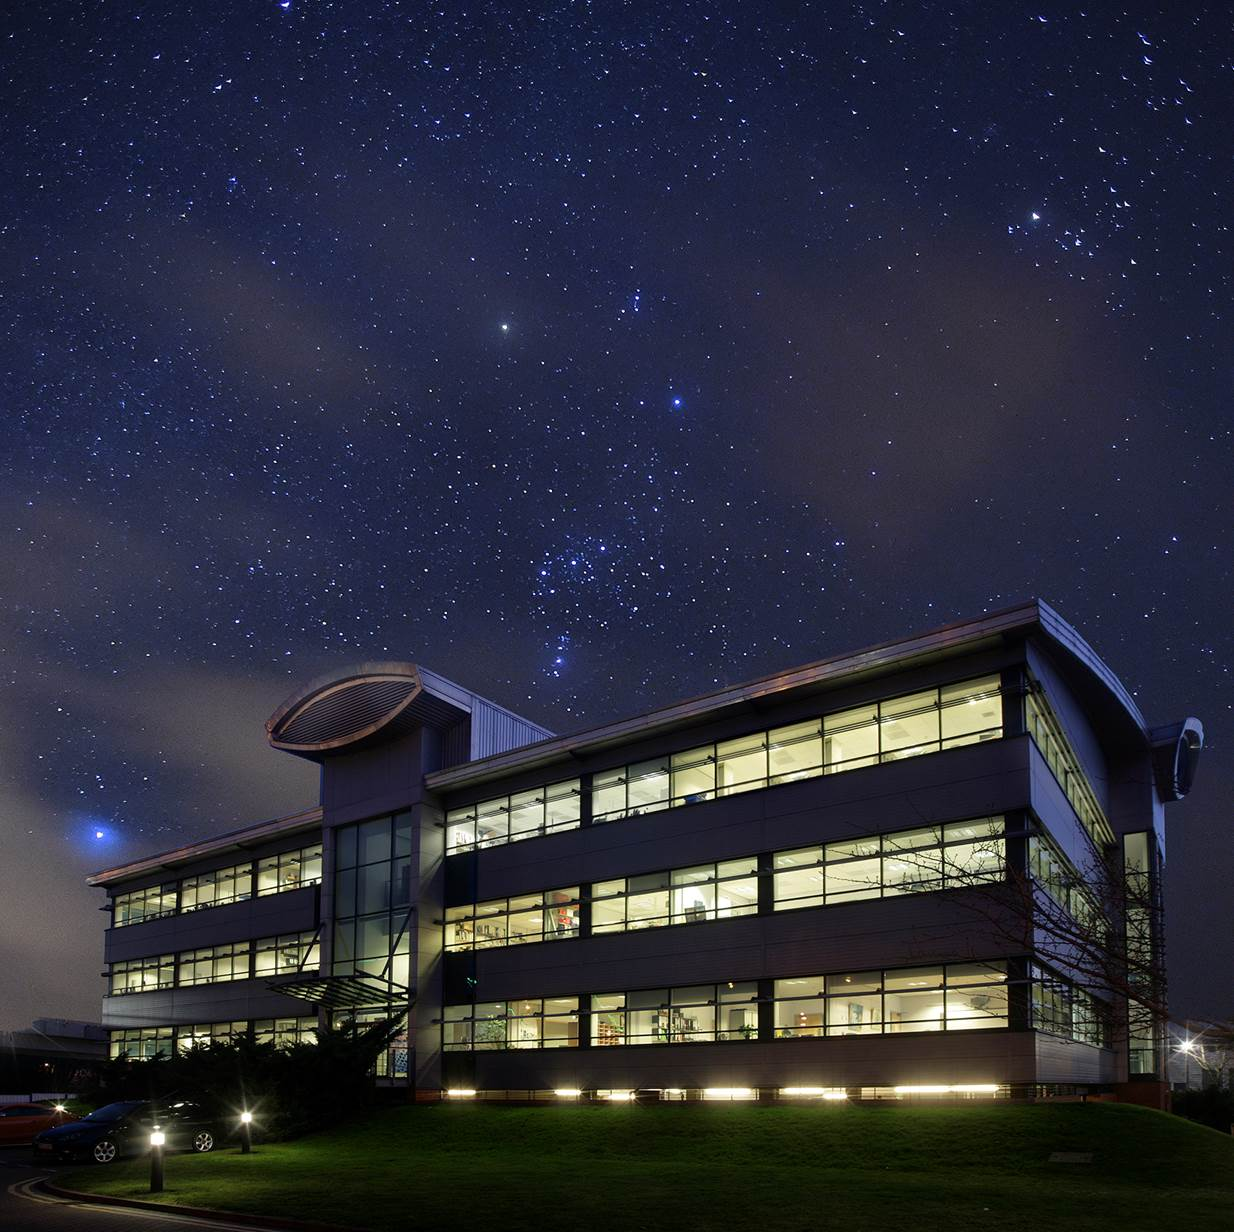 boots building with stars.jpg